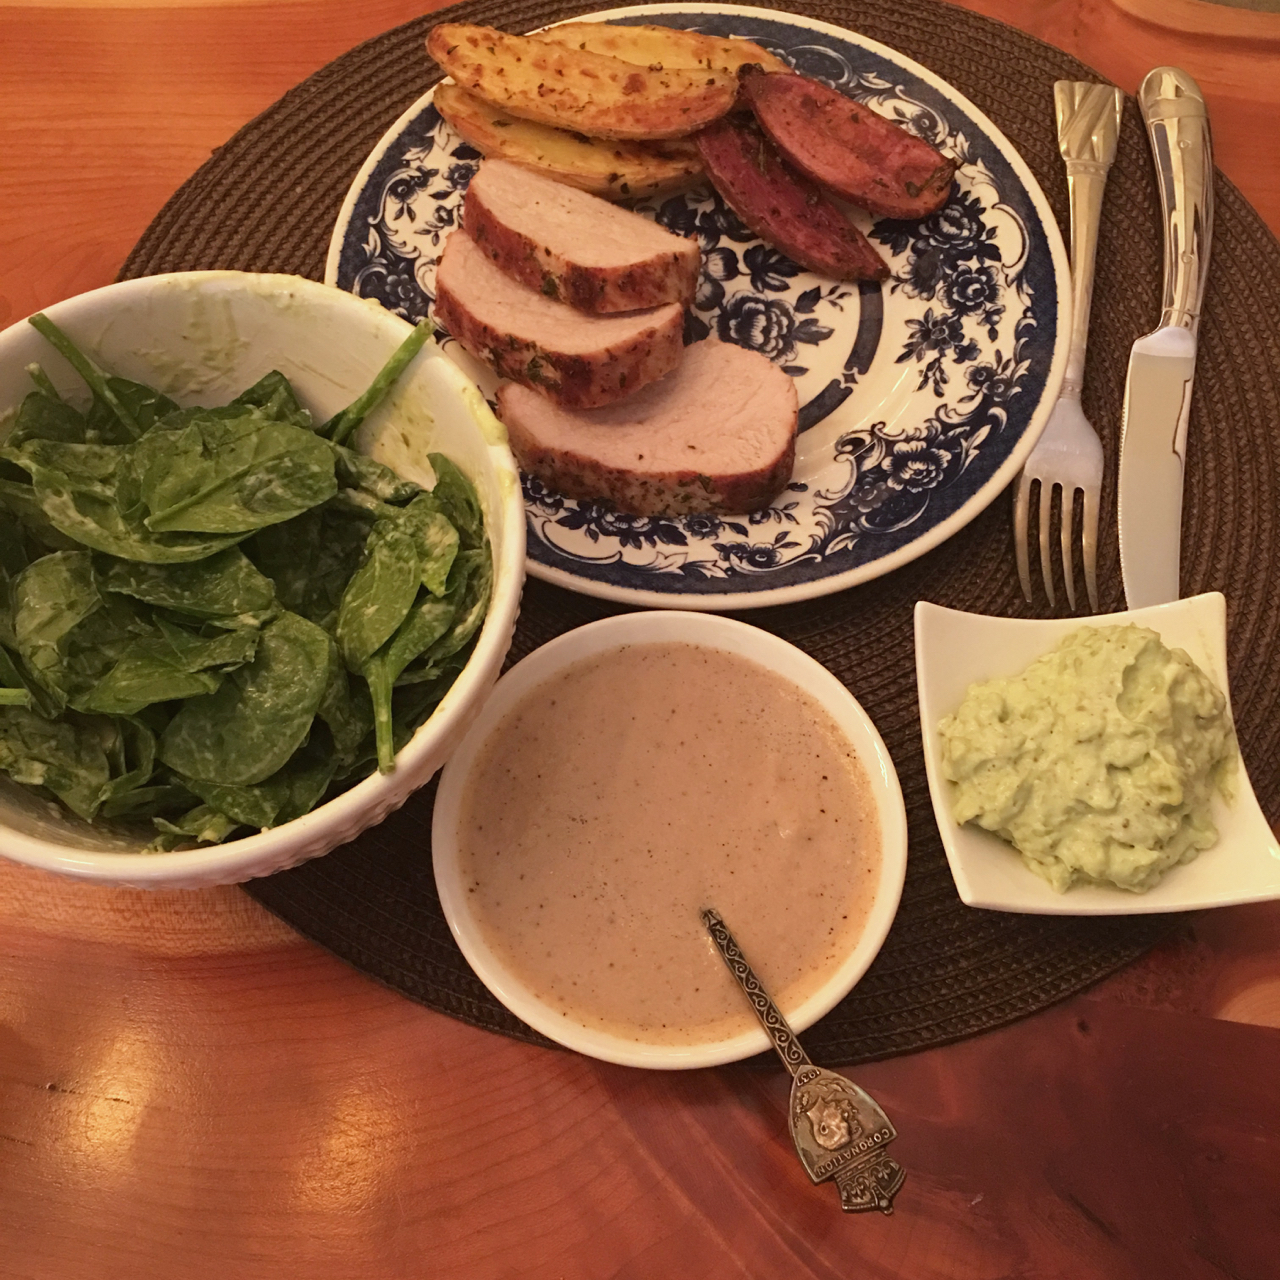 ROASTED PORK TENDERLOIN WITH FINGERLING POTATOES, WHITE GRAVY AND SPINACH SALAD + AVOCADO DRESSING